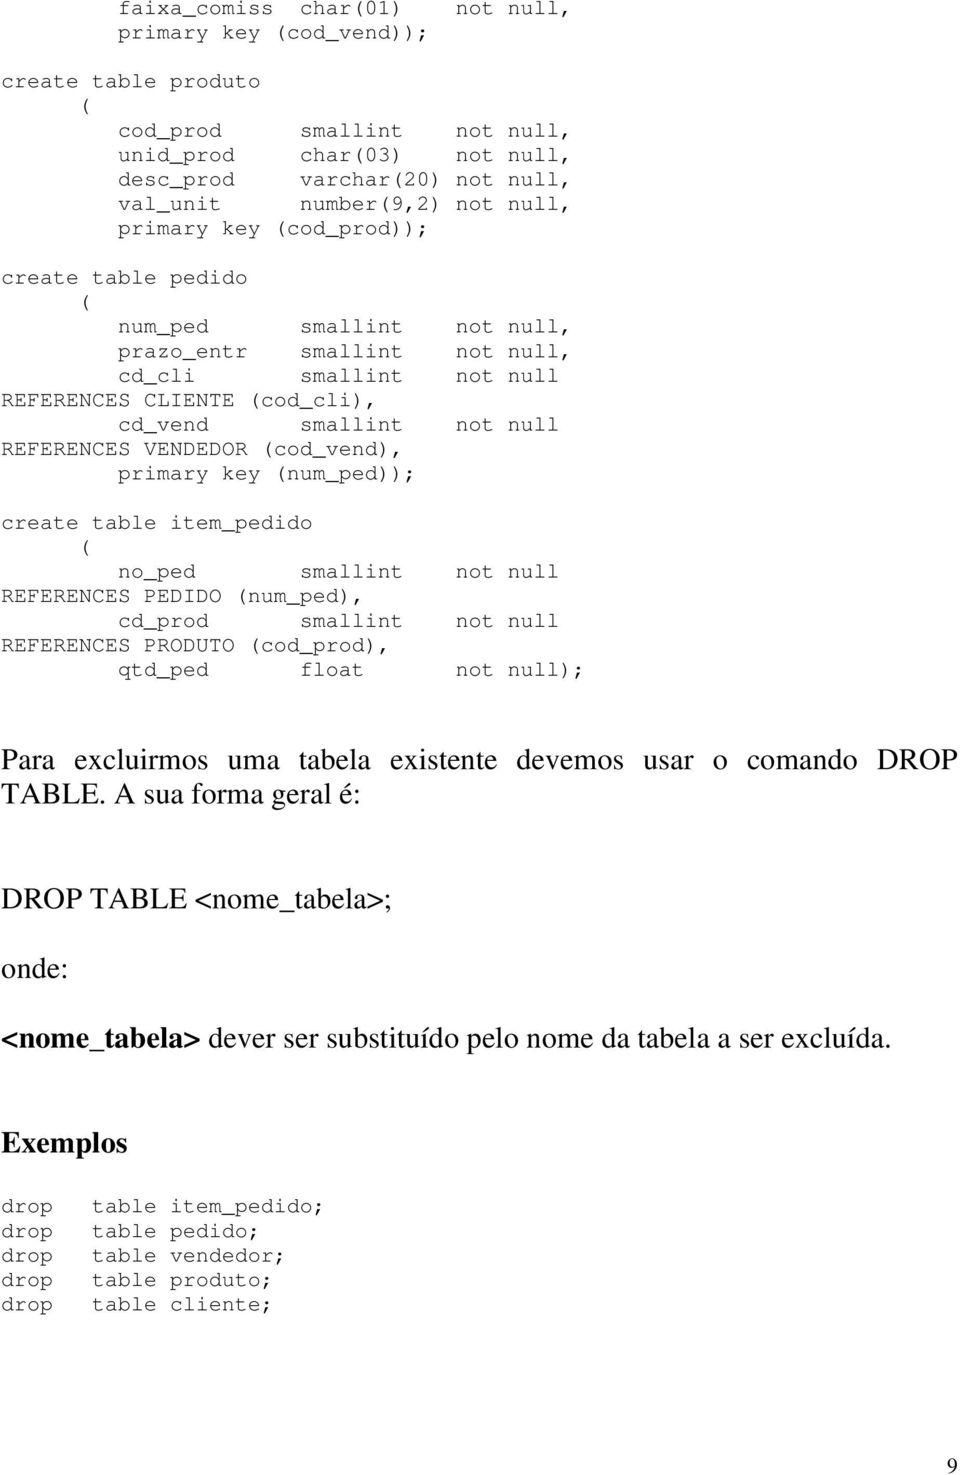 VENDEDOR (cod_vend), primary key (num_ped)); create table item_pedido ( no_ped smallint not null REFERENCES PEDIDO (num_ped), cd_prod smallint not null REFERENCES PRODUTO (cod_prod), qtd_ped float